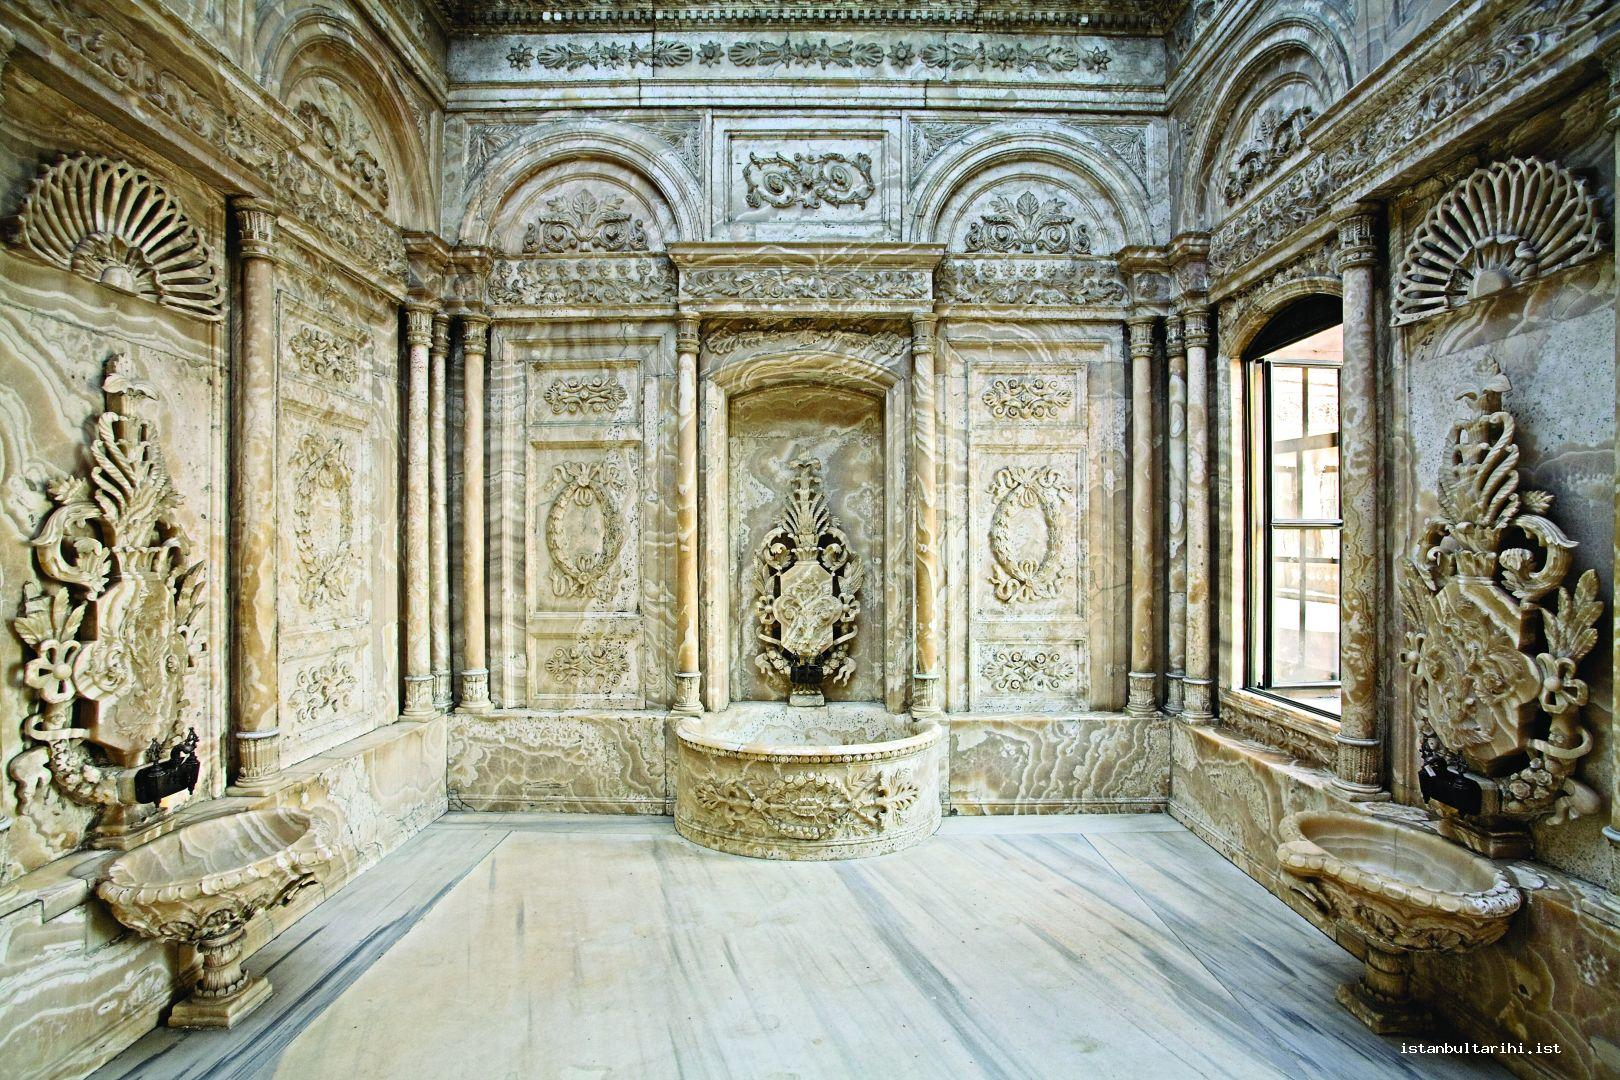 9- The sultan's bath room in Dolmabahçe Palace